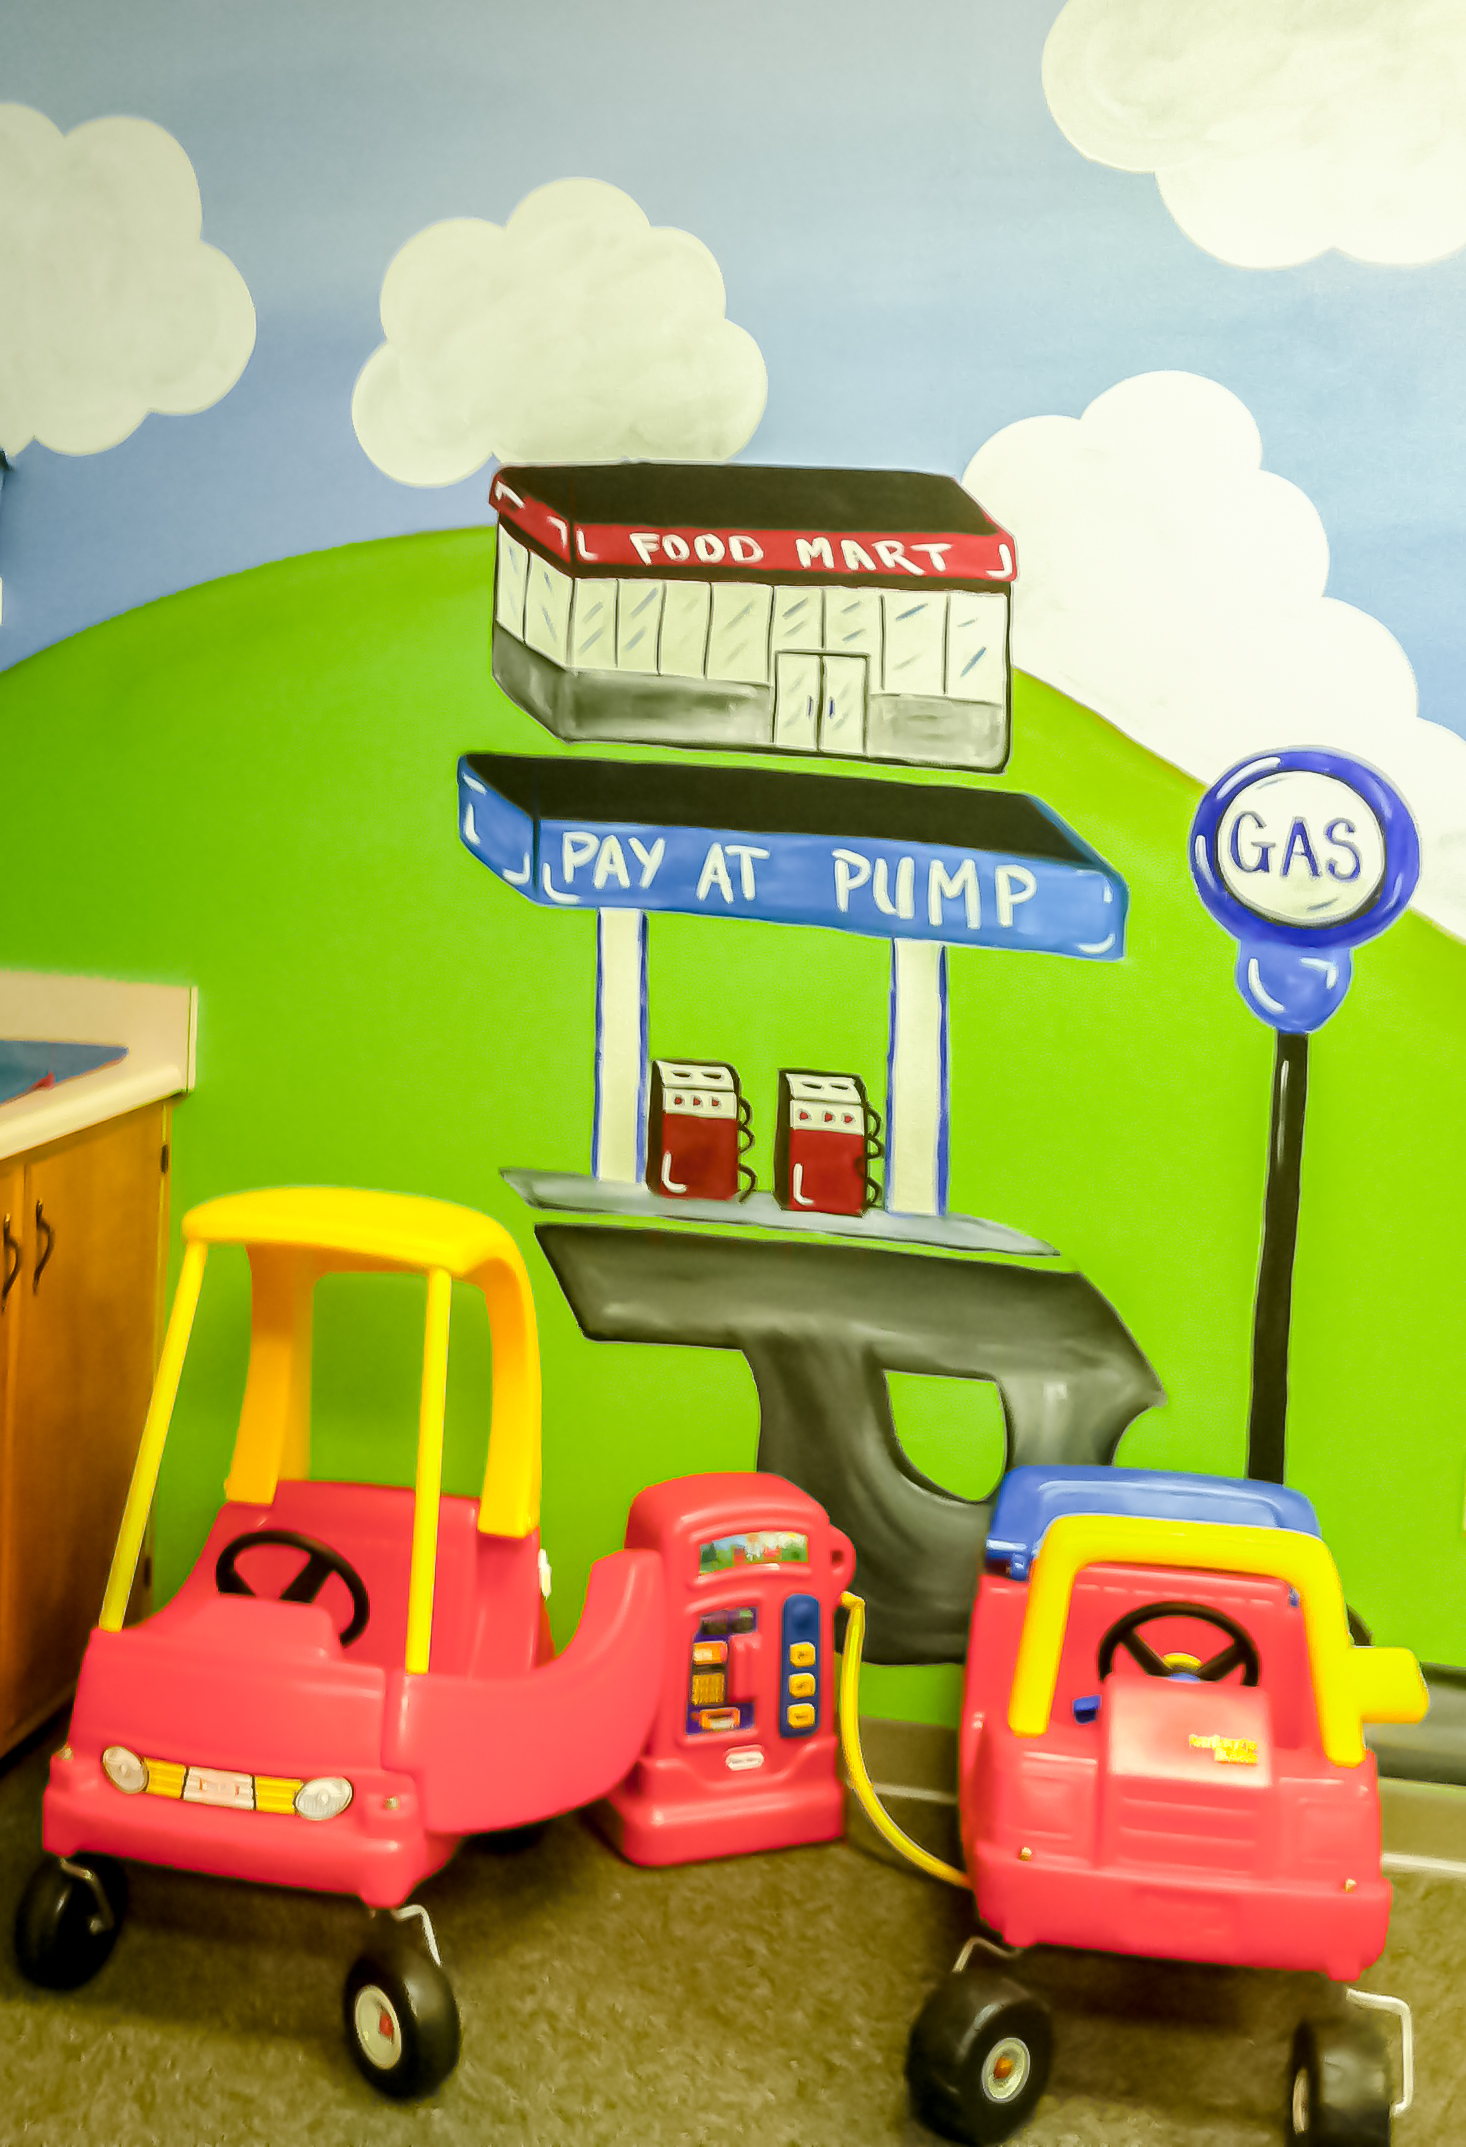 pay-at-pump-4web.jpg